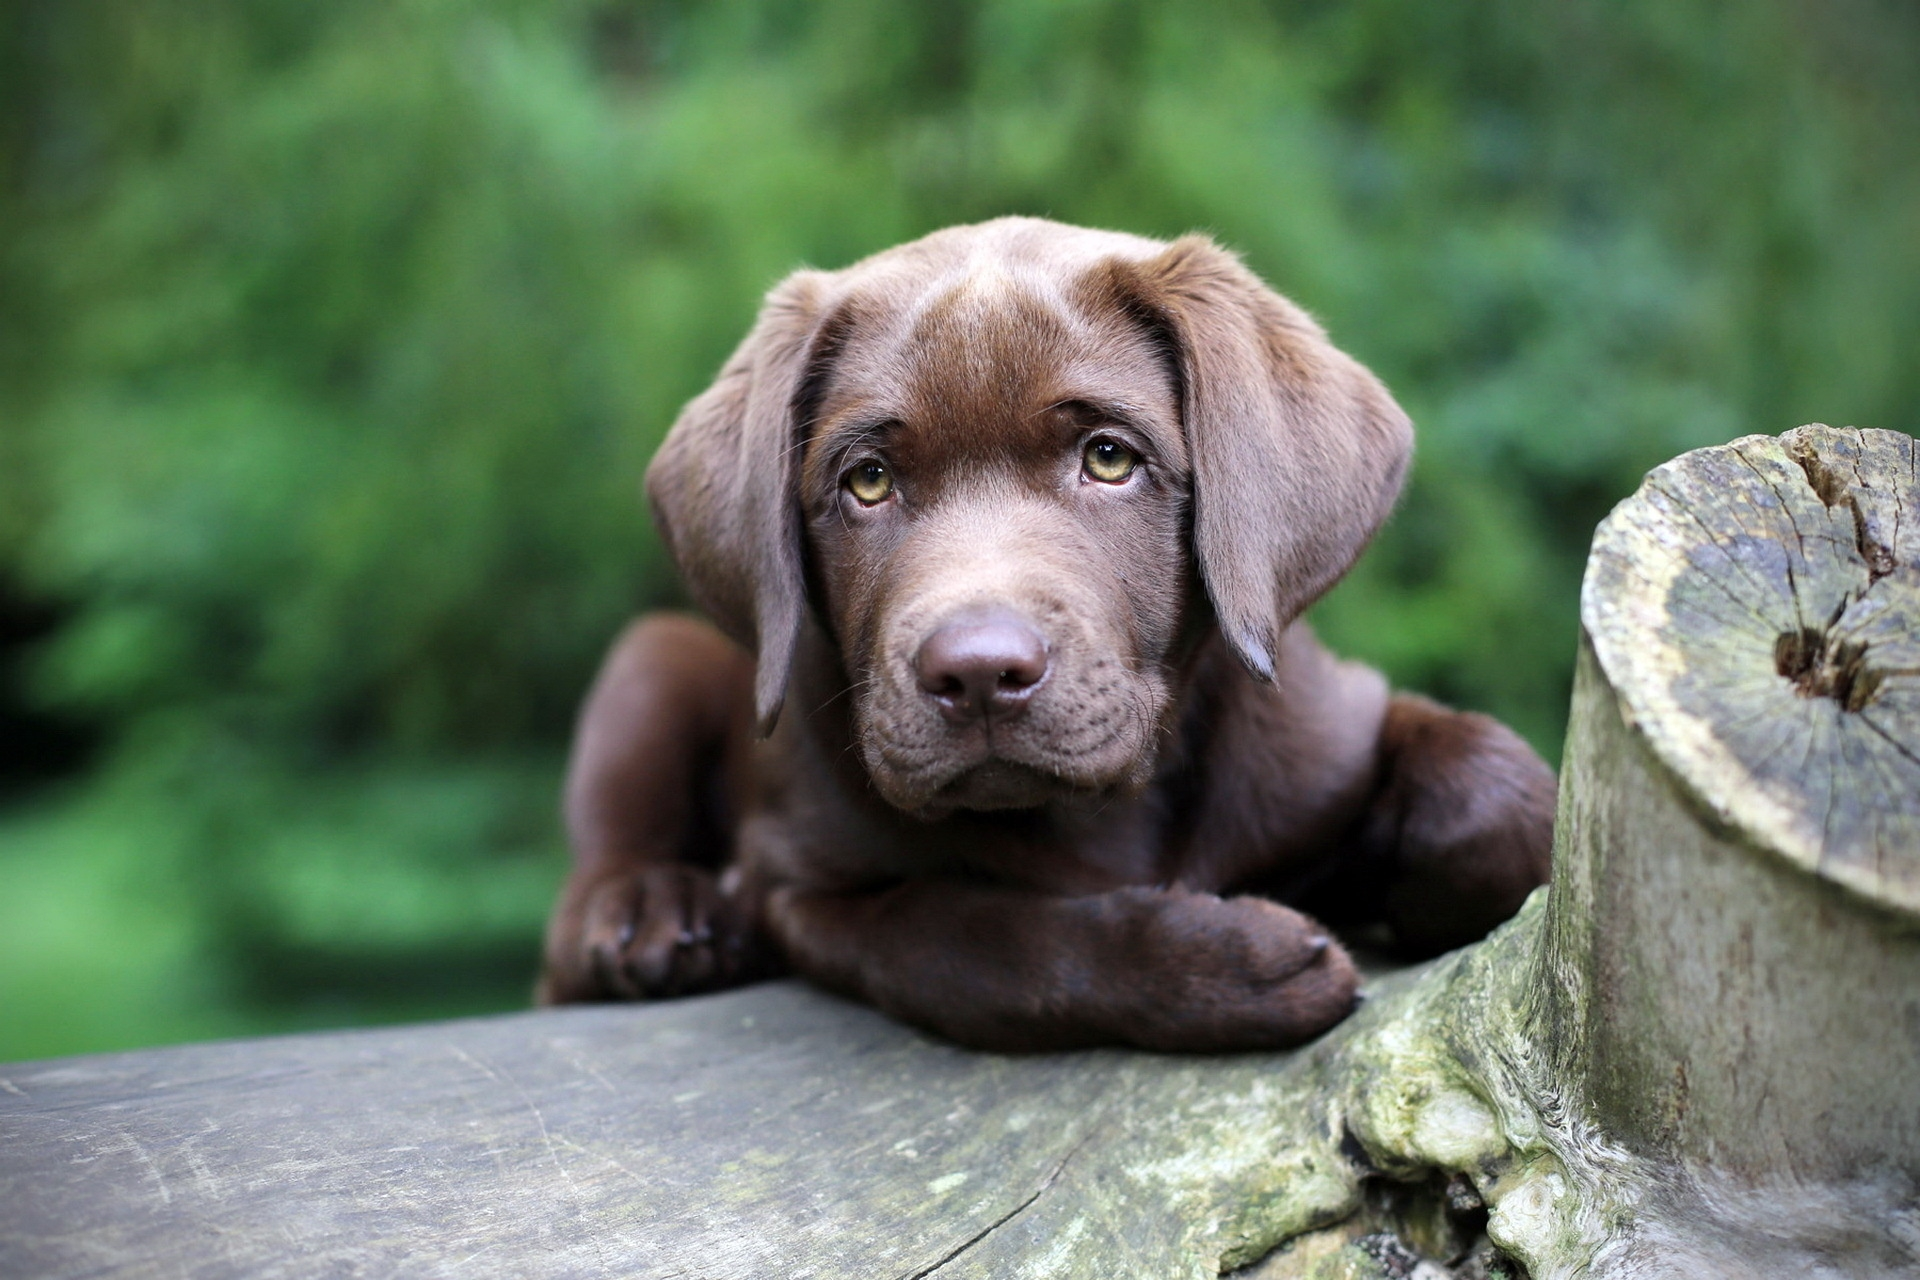 57485 download wallpaper Animals, Dog, Puppy, Muzzle, Sight, Opinion screensavers and pictures for free